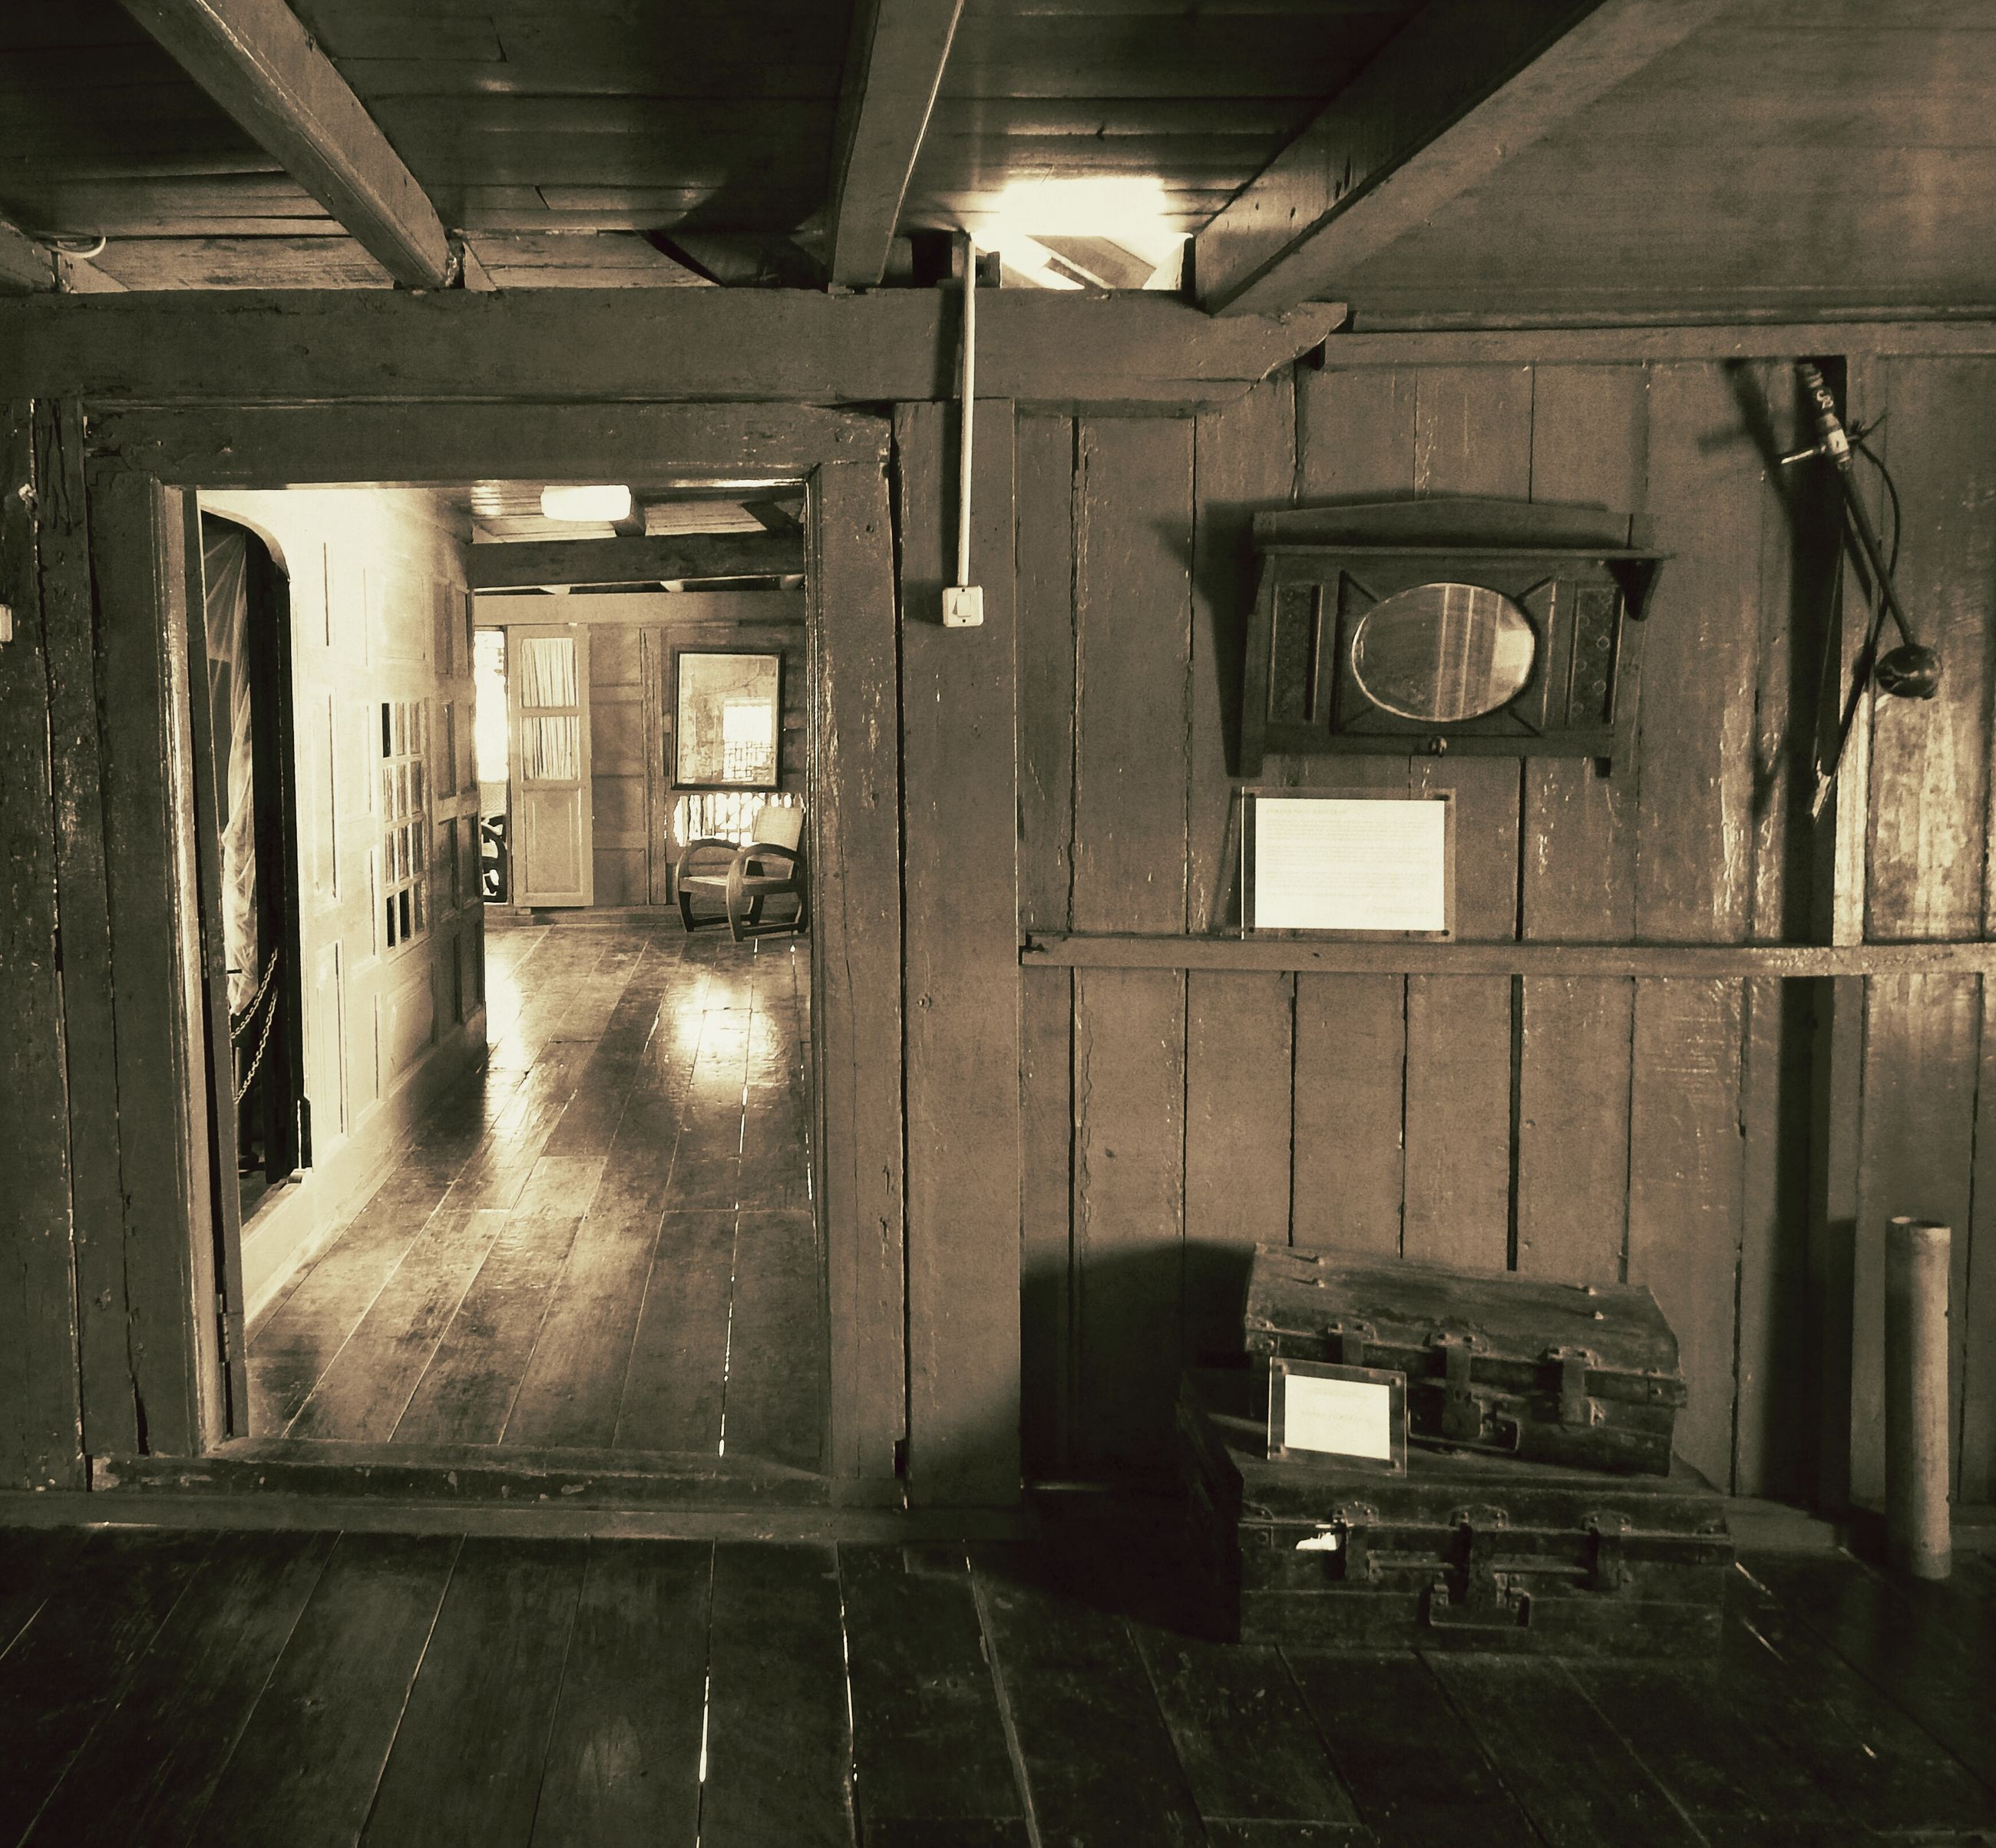 indoors, abandoned, obsolete, damaged, old, run-down, deterioration, transportation, interior, built structure, door, architecture, no people, messy, dirty, window, bad condition, house, old-fashioned, weathered